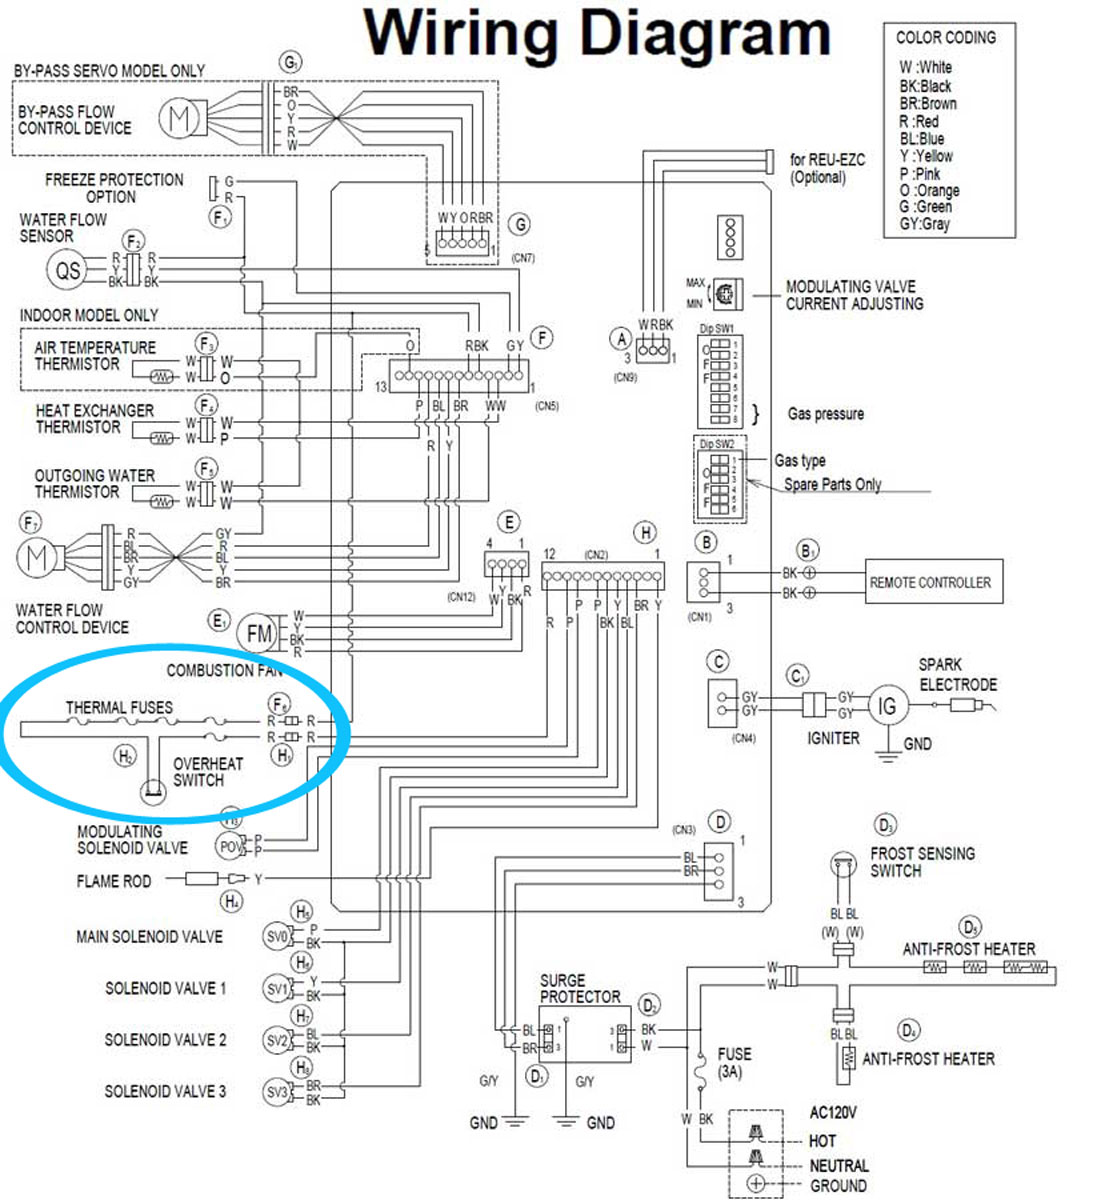 Check the electric troubleshoot from 2008/pdf